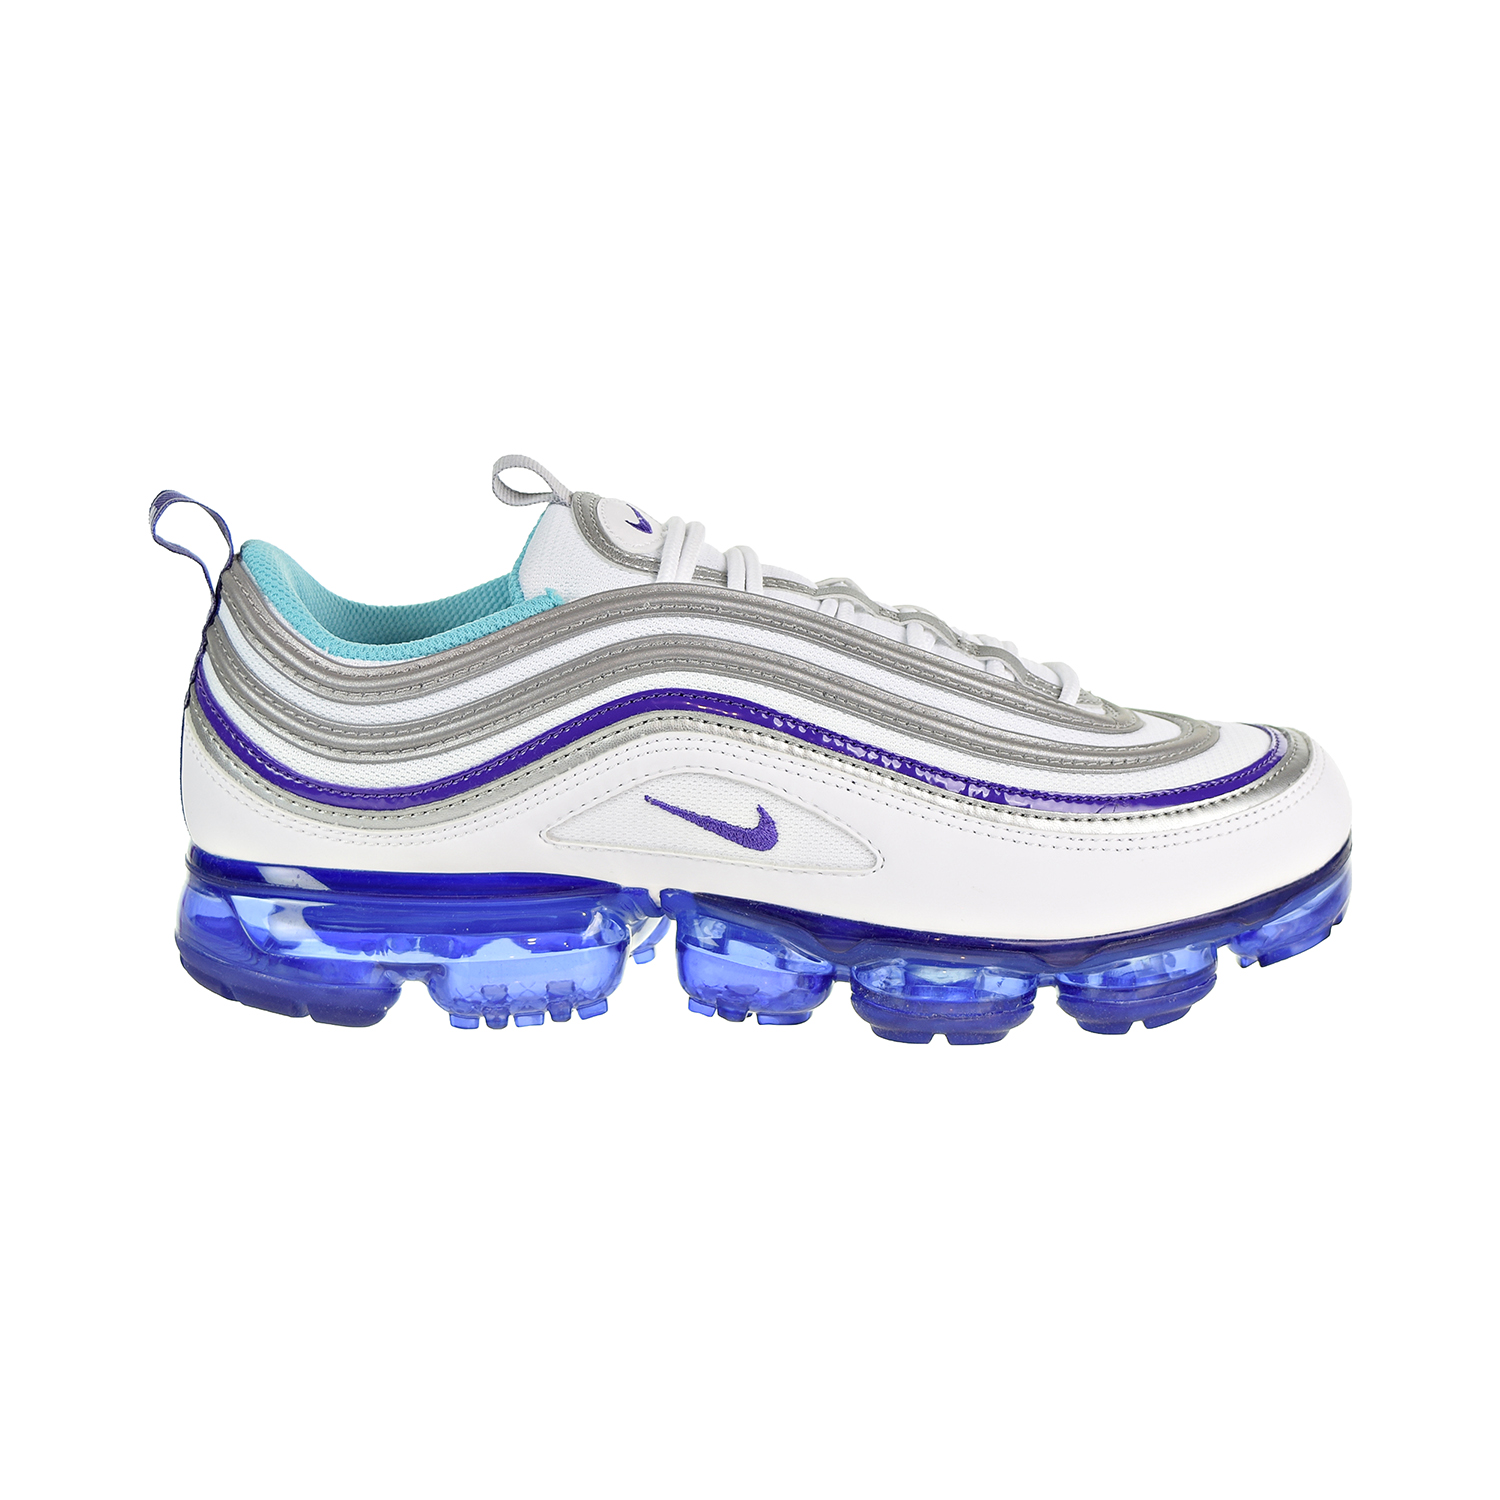 621f901153a Nike Air Vapormax  97 Men s Shoes White Aqua Varsity Purple  Metallic Silver  aj7291-100